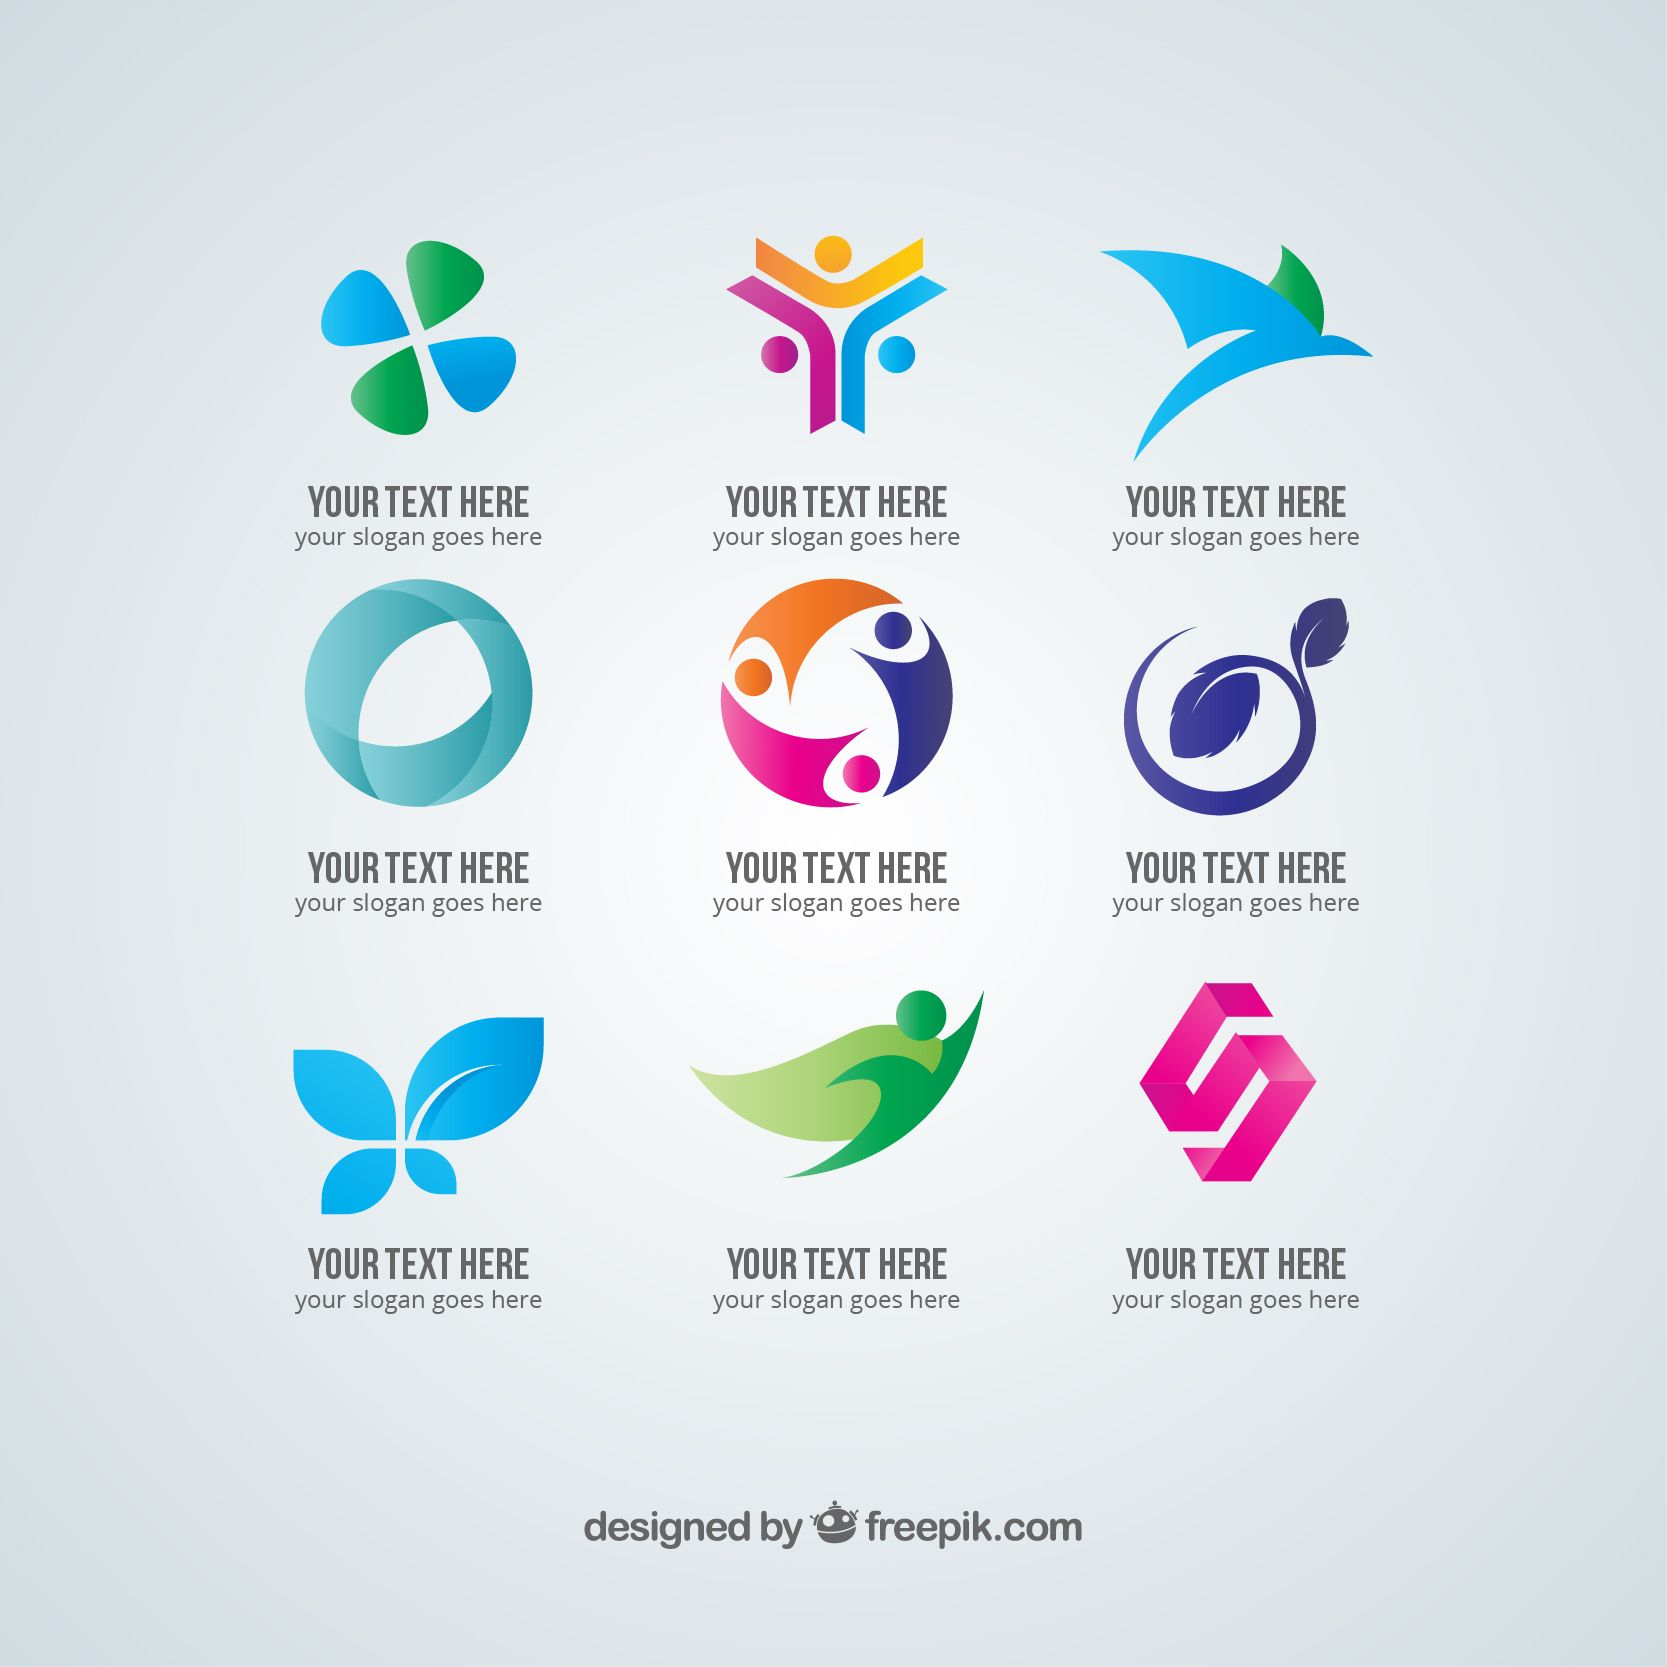 Your brand identity defines your business values and